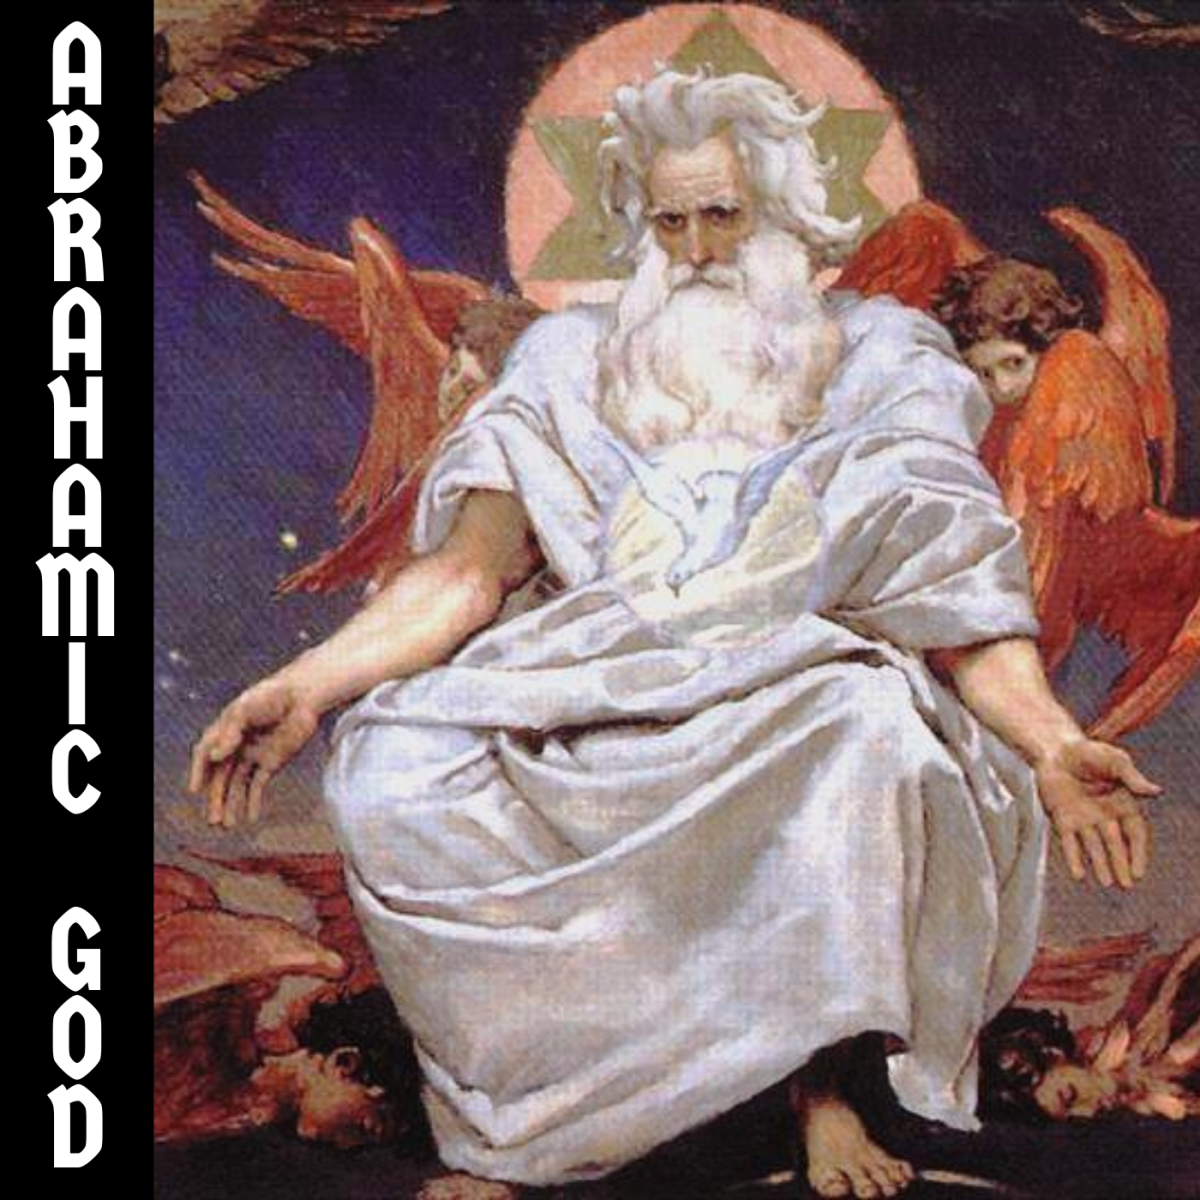 """The Abrahamic God told his follower, Abraham, to sacrifice his son in a test of loyalty. When he was about to do so, God said something along the lines of """"just kidding."""""""